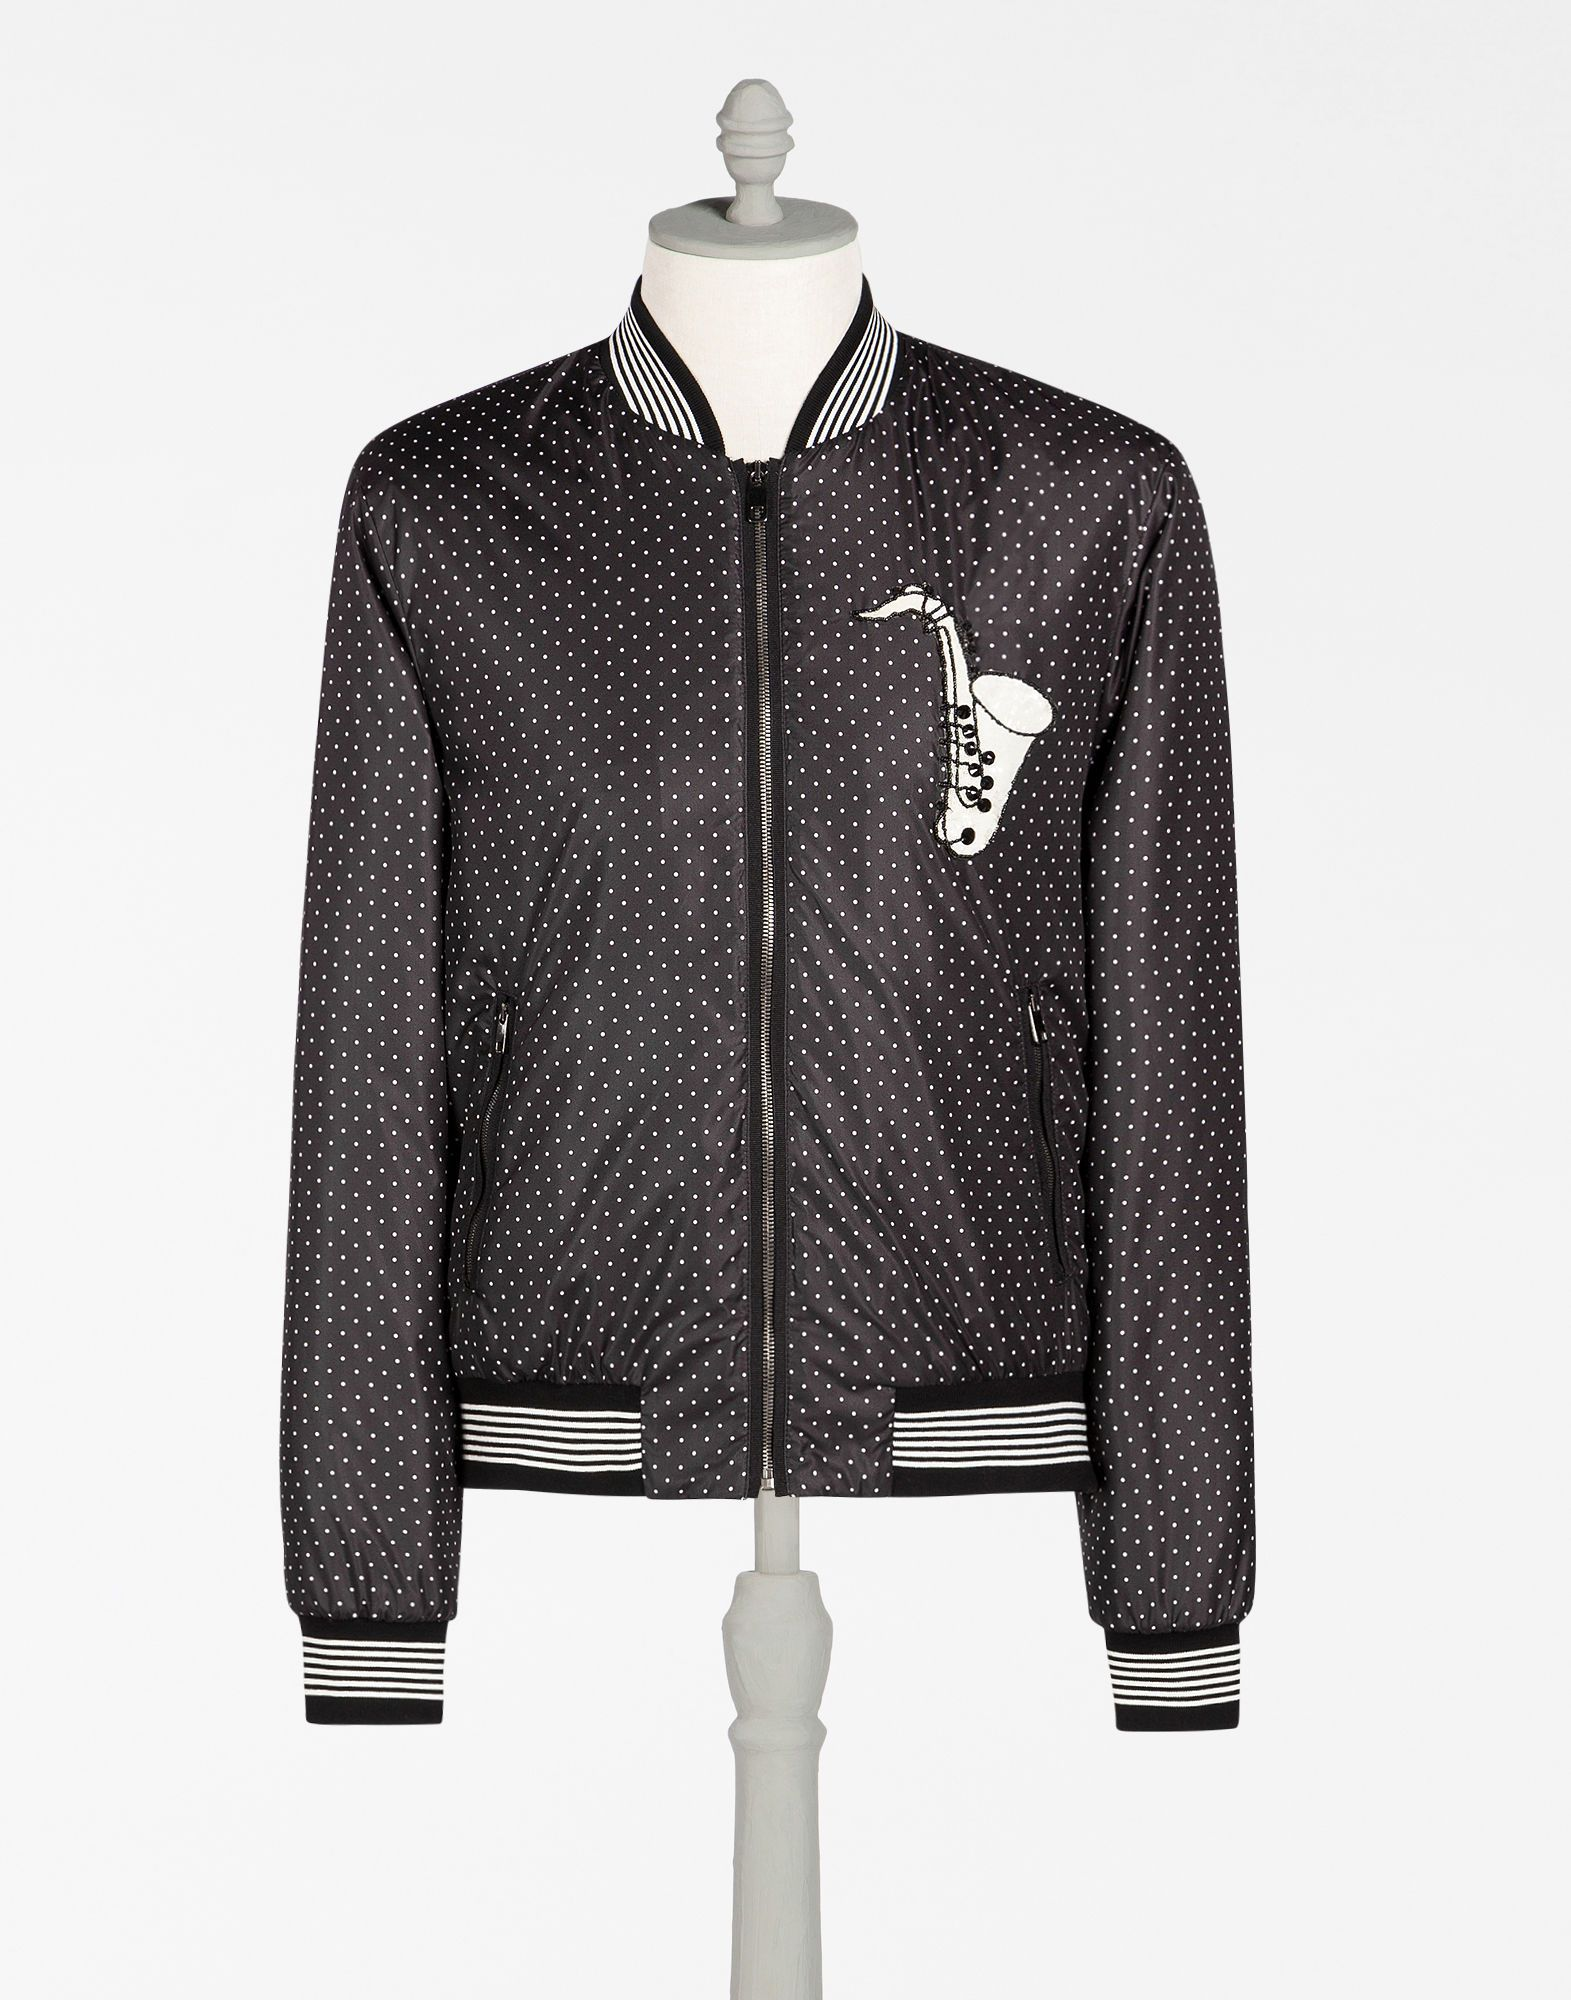 31fa6d4d6 DOLCE & GABBANA Bomber Jacket In Printed Nylon With Patch ...